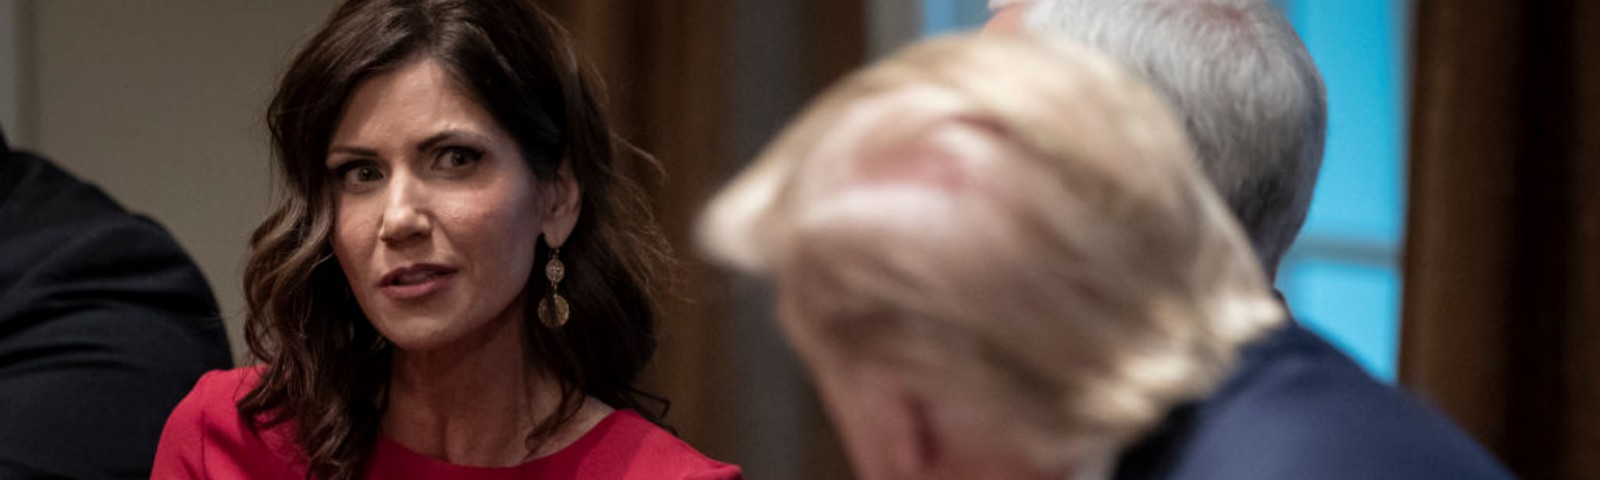 A photo of Kristi Noem talking to Mike Pence and Donald Trump at a meeting.